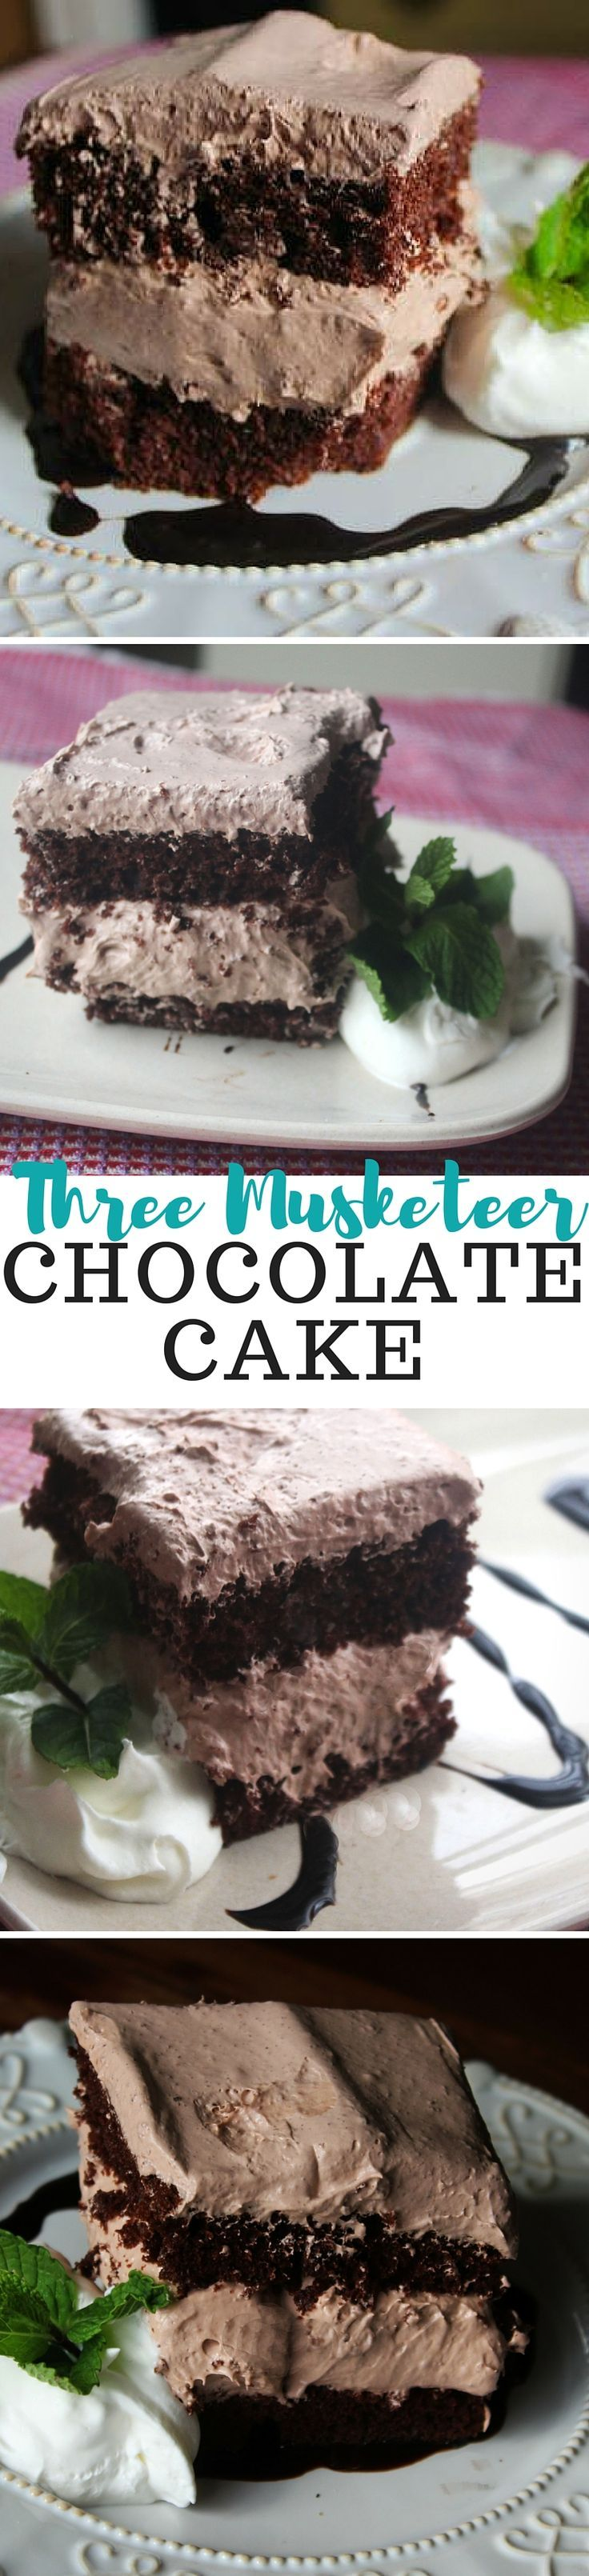 """This chocolate cake recipe is so yummy! The chocolate frosting is creamy and not overly sweet. The filling's a bit thicker and really reminds me of the candy bar."""